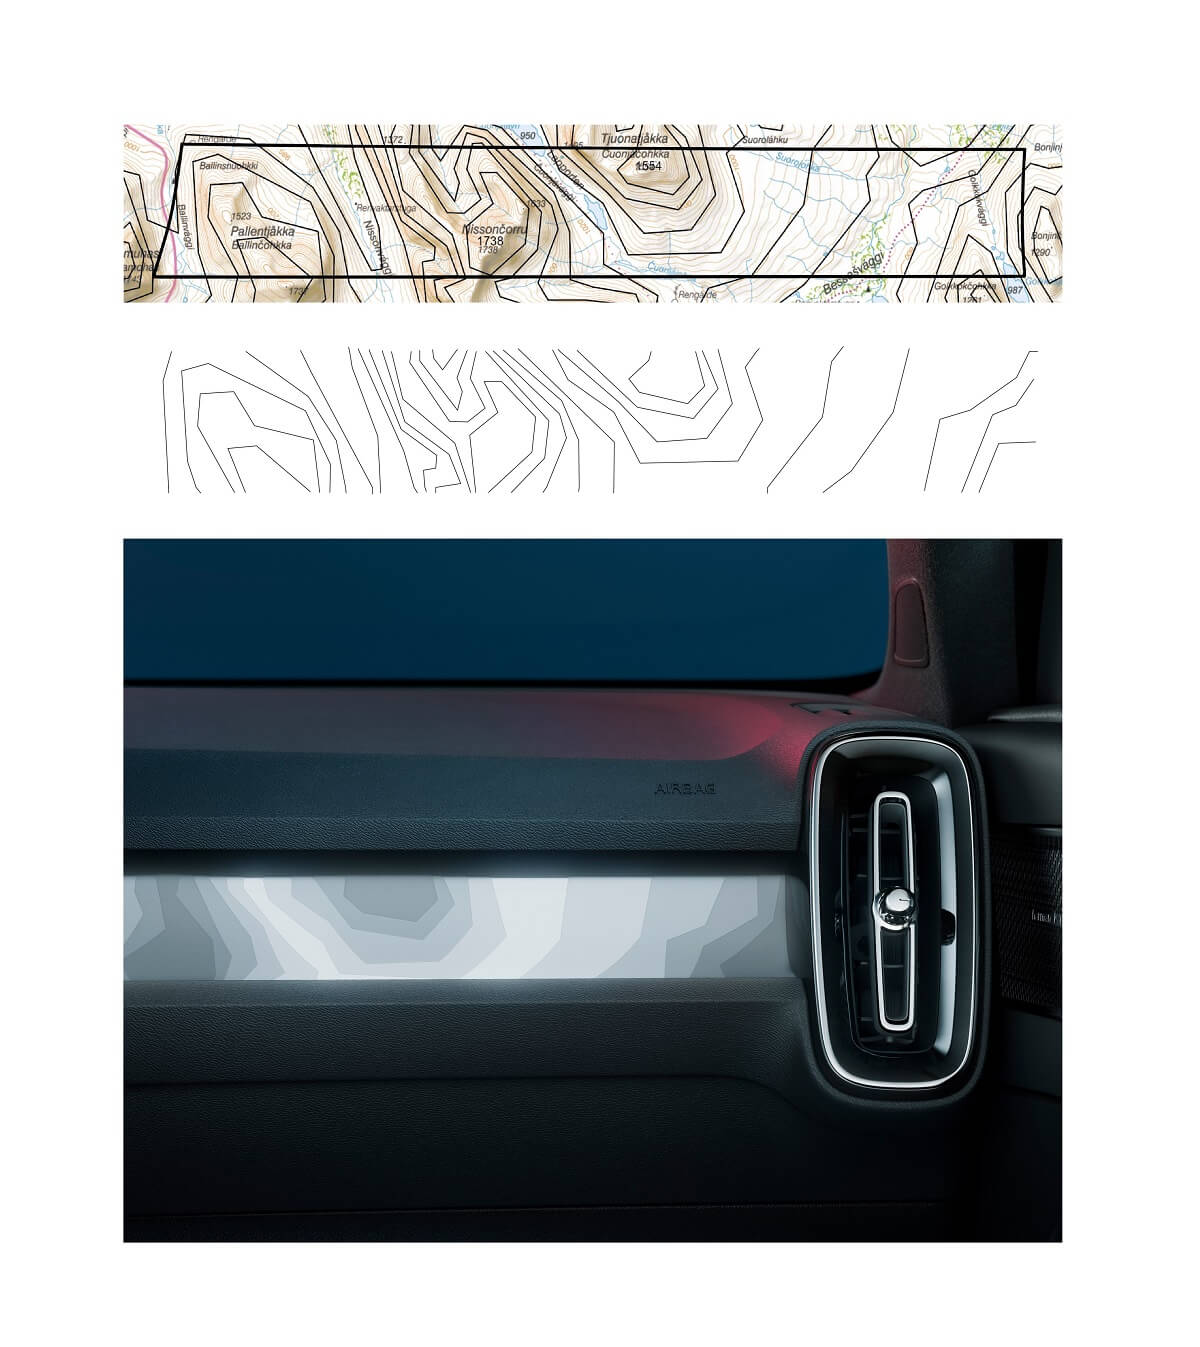 282479_The_graphics_on_the_Volvo_C40_s_dashboard_and_front_door_panels_are.jpg